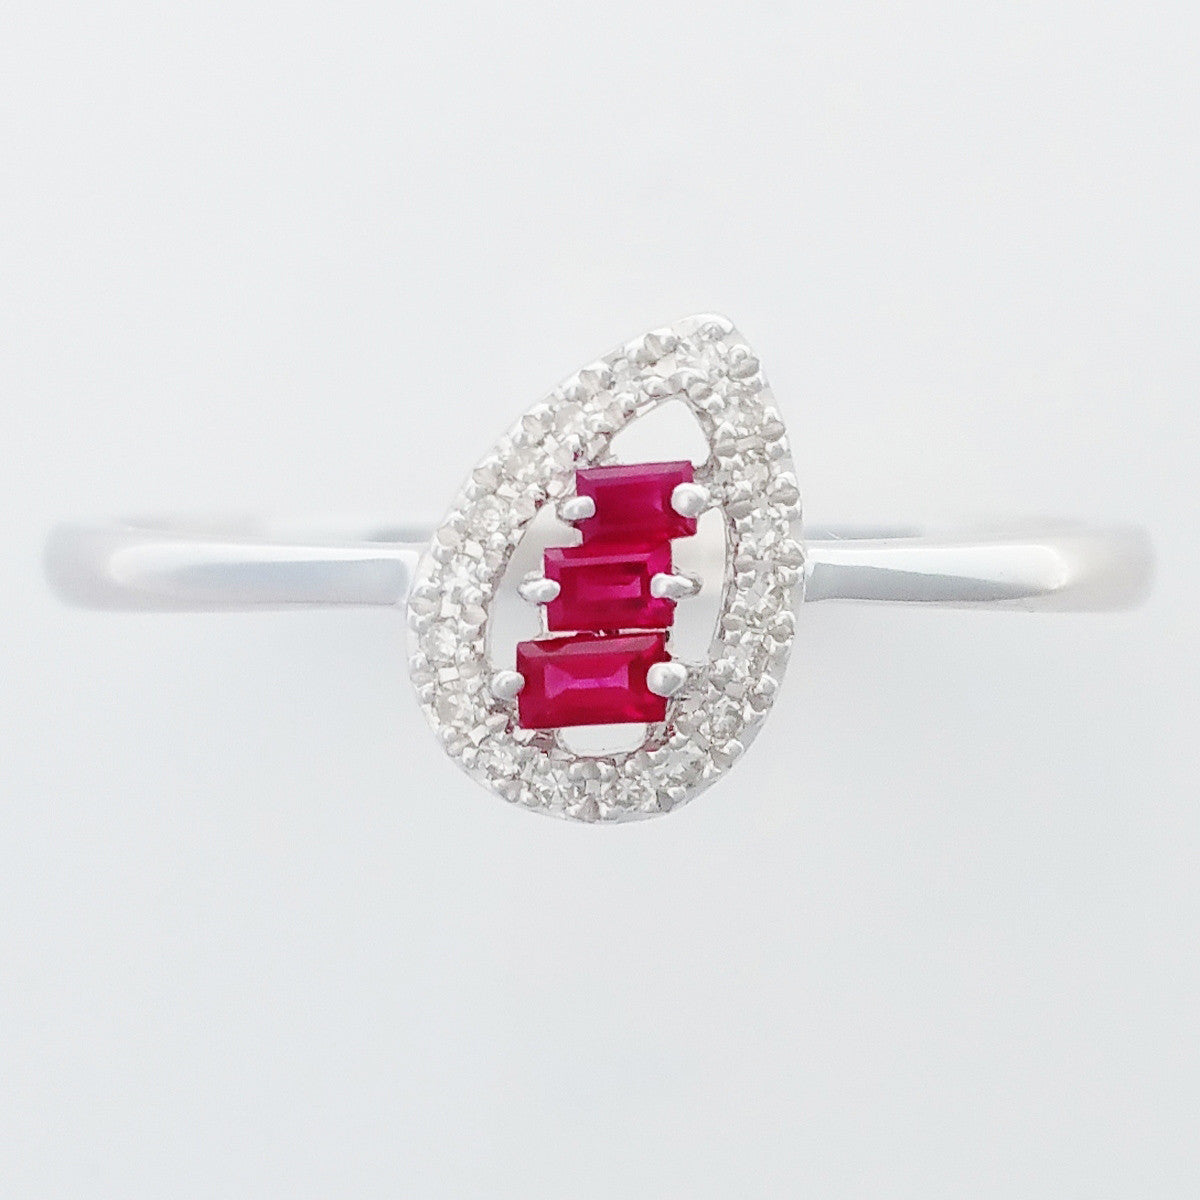 9K SOLID WHITE GOLD NATURAL BAGUETTE RUBY RING WITH 18 DIAMONDS.